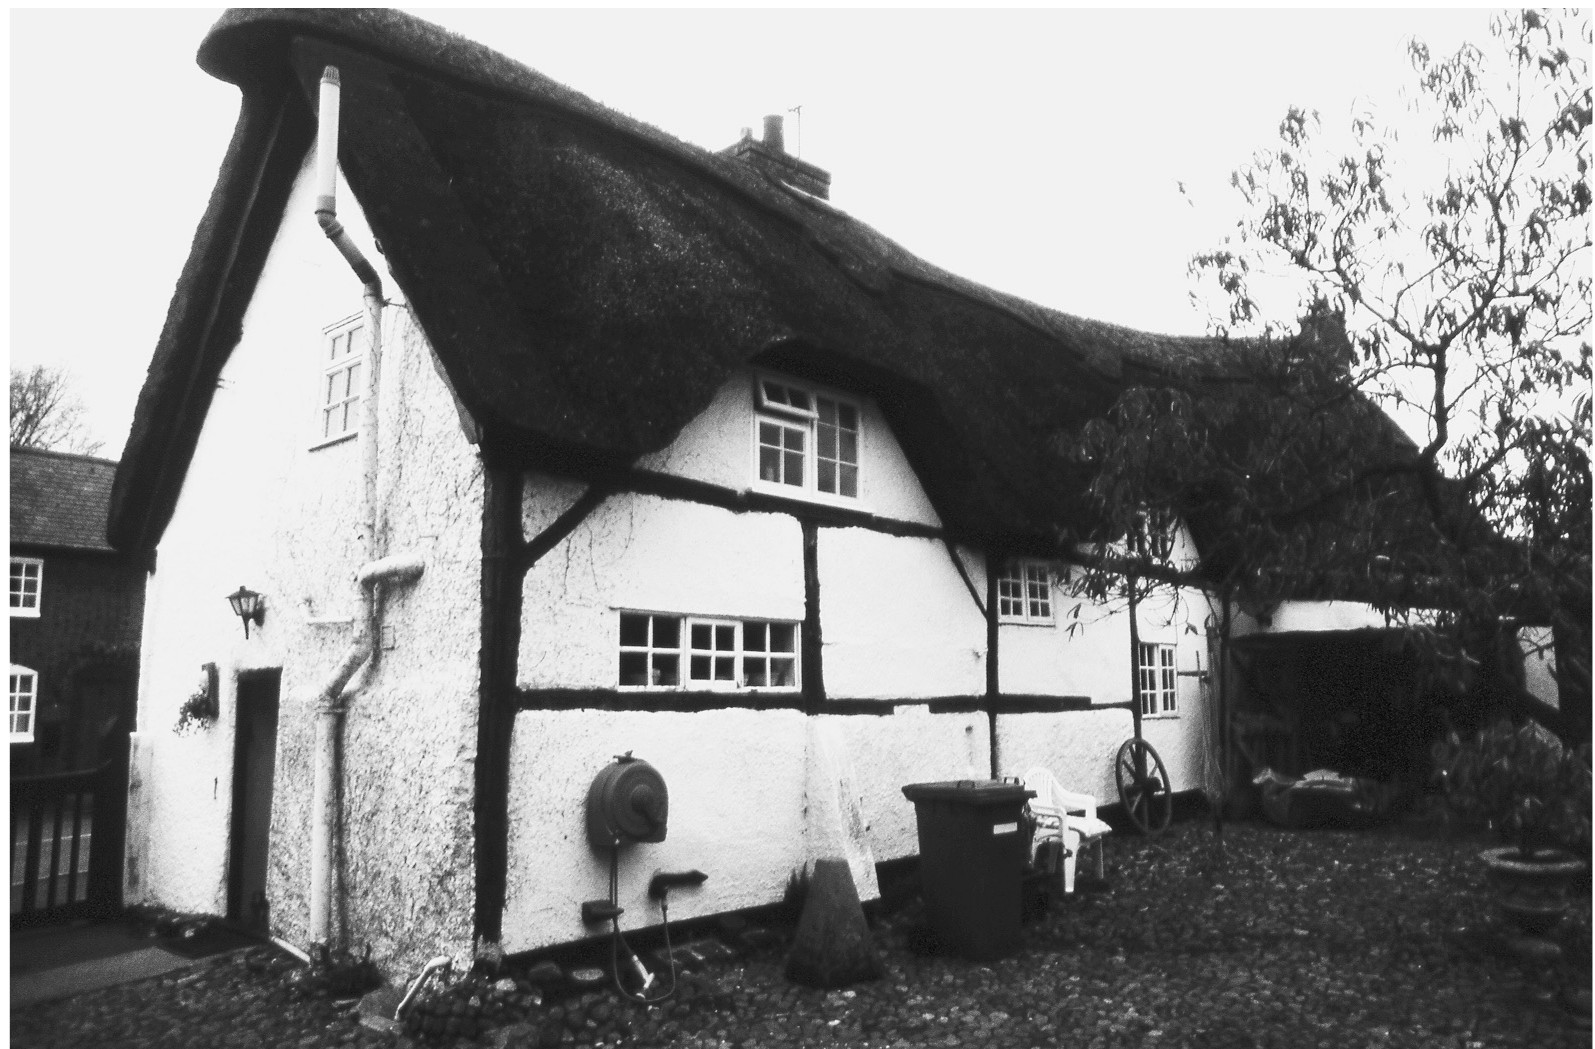 A black and white photograph of a building with a timber frame and thatched roof. The building has small, irregularly placed rectangular windows.